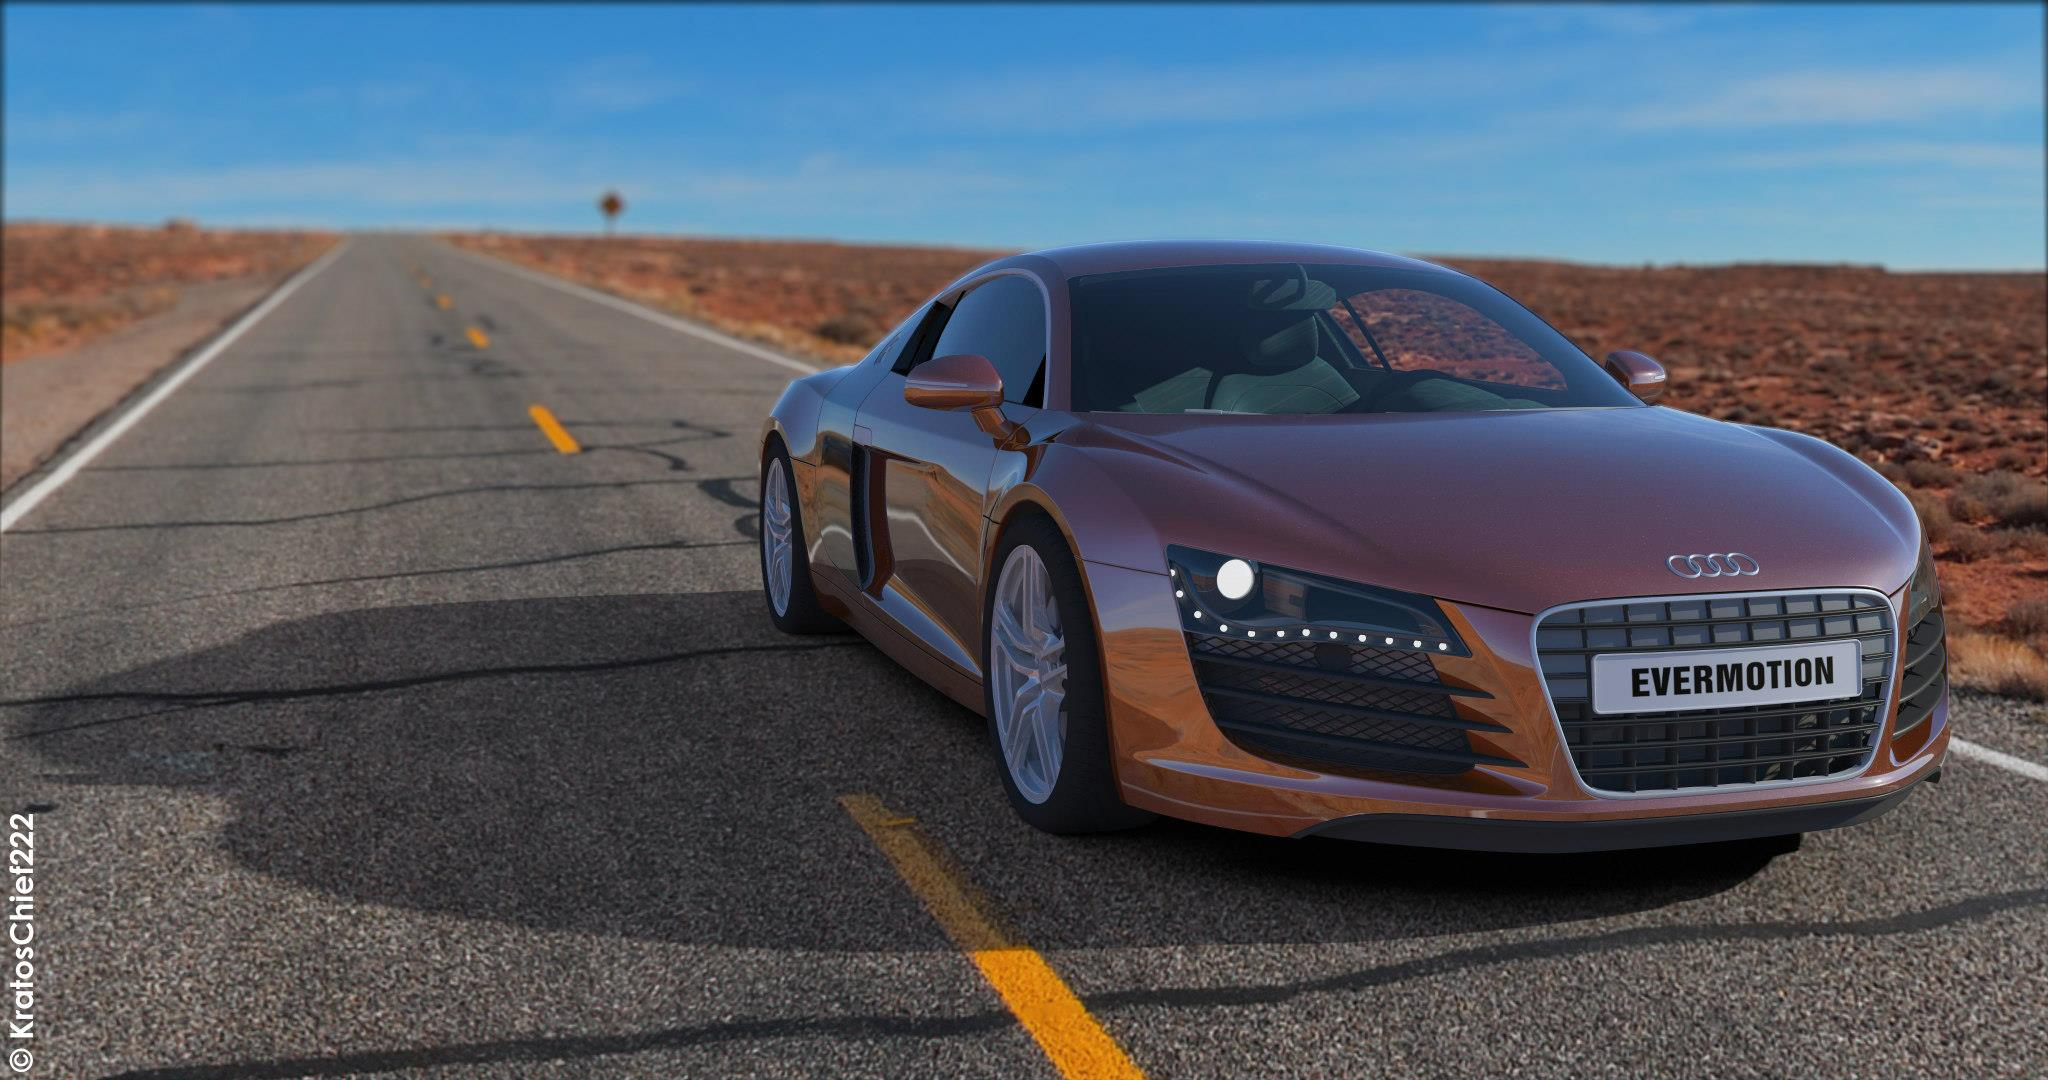 3d-maya-kratoschief222-audi-in-the-desert